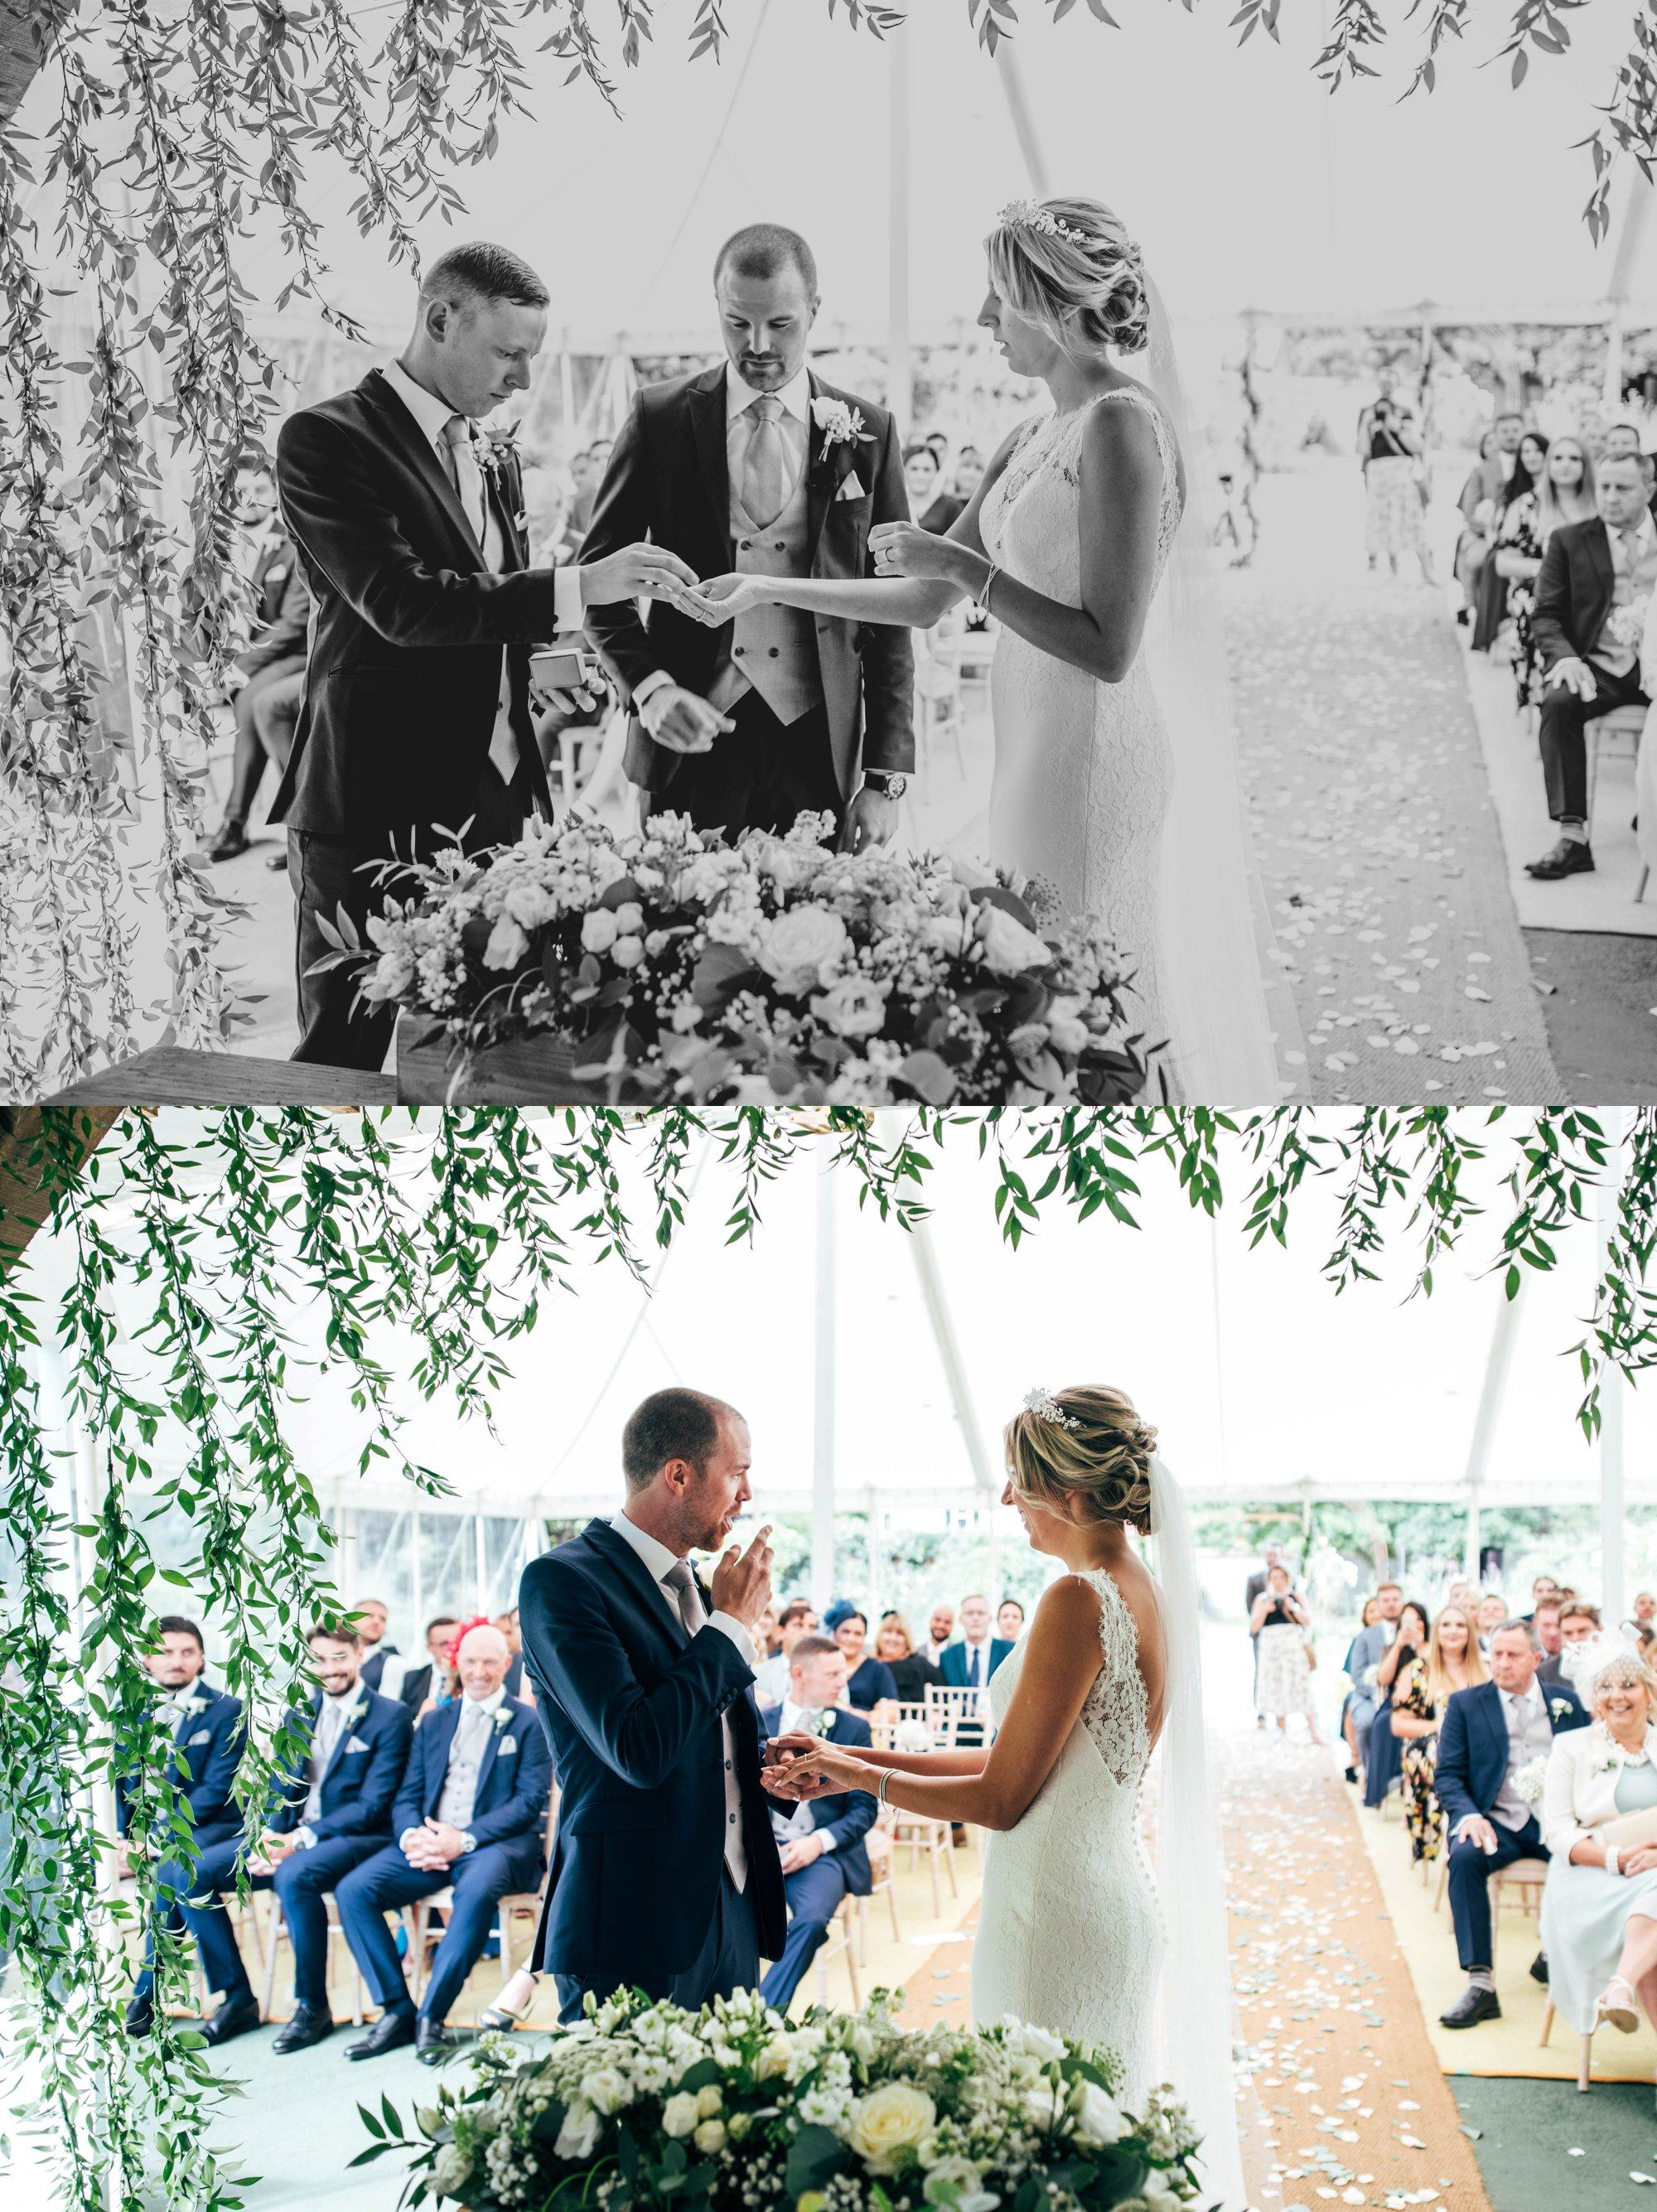 Houchins, Coggeshall Wedding, Whites & Greens with hints of copper, Bride wears Pronovias. Essex Documentary Wedding Photographer